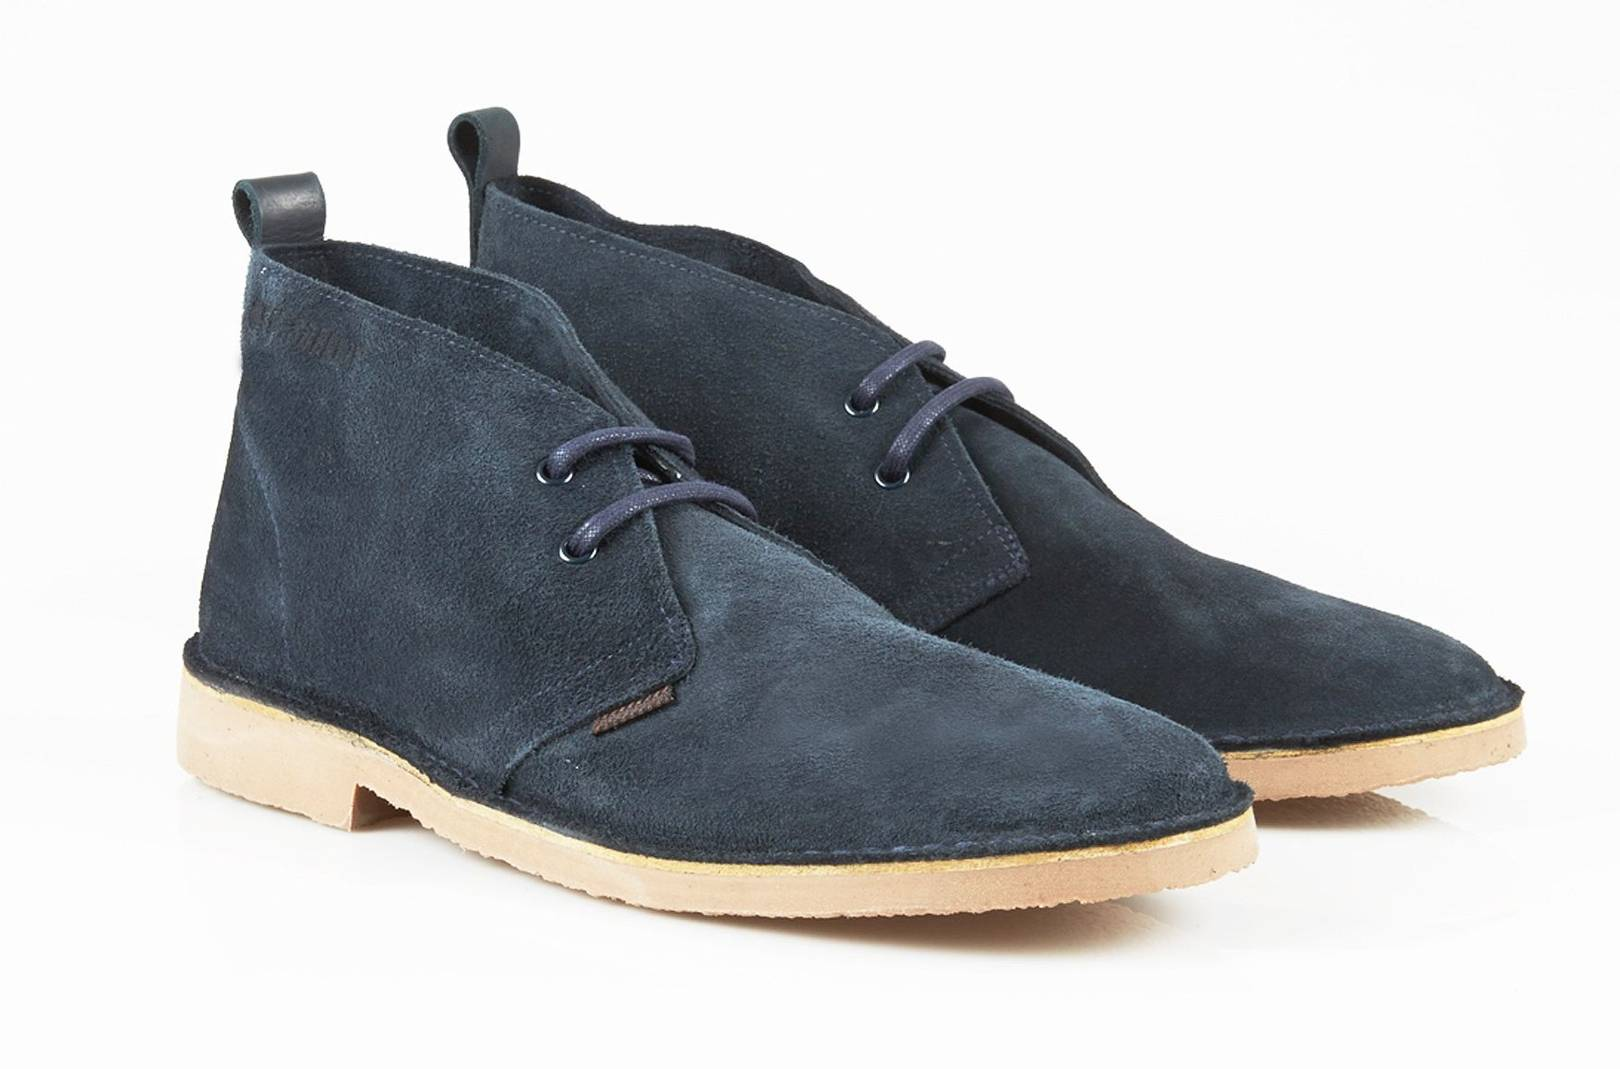 0b250b073e29 7 of the best desert boots for summer